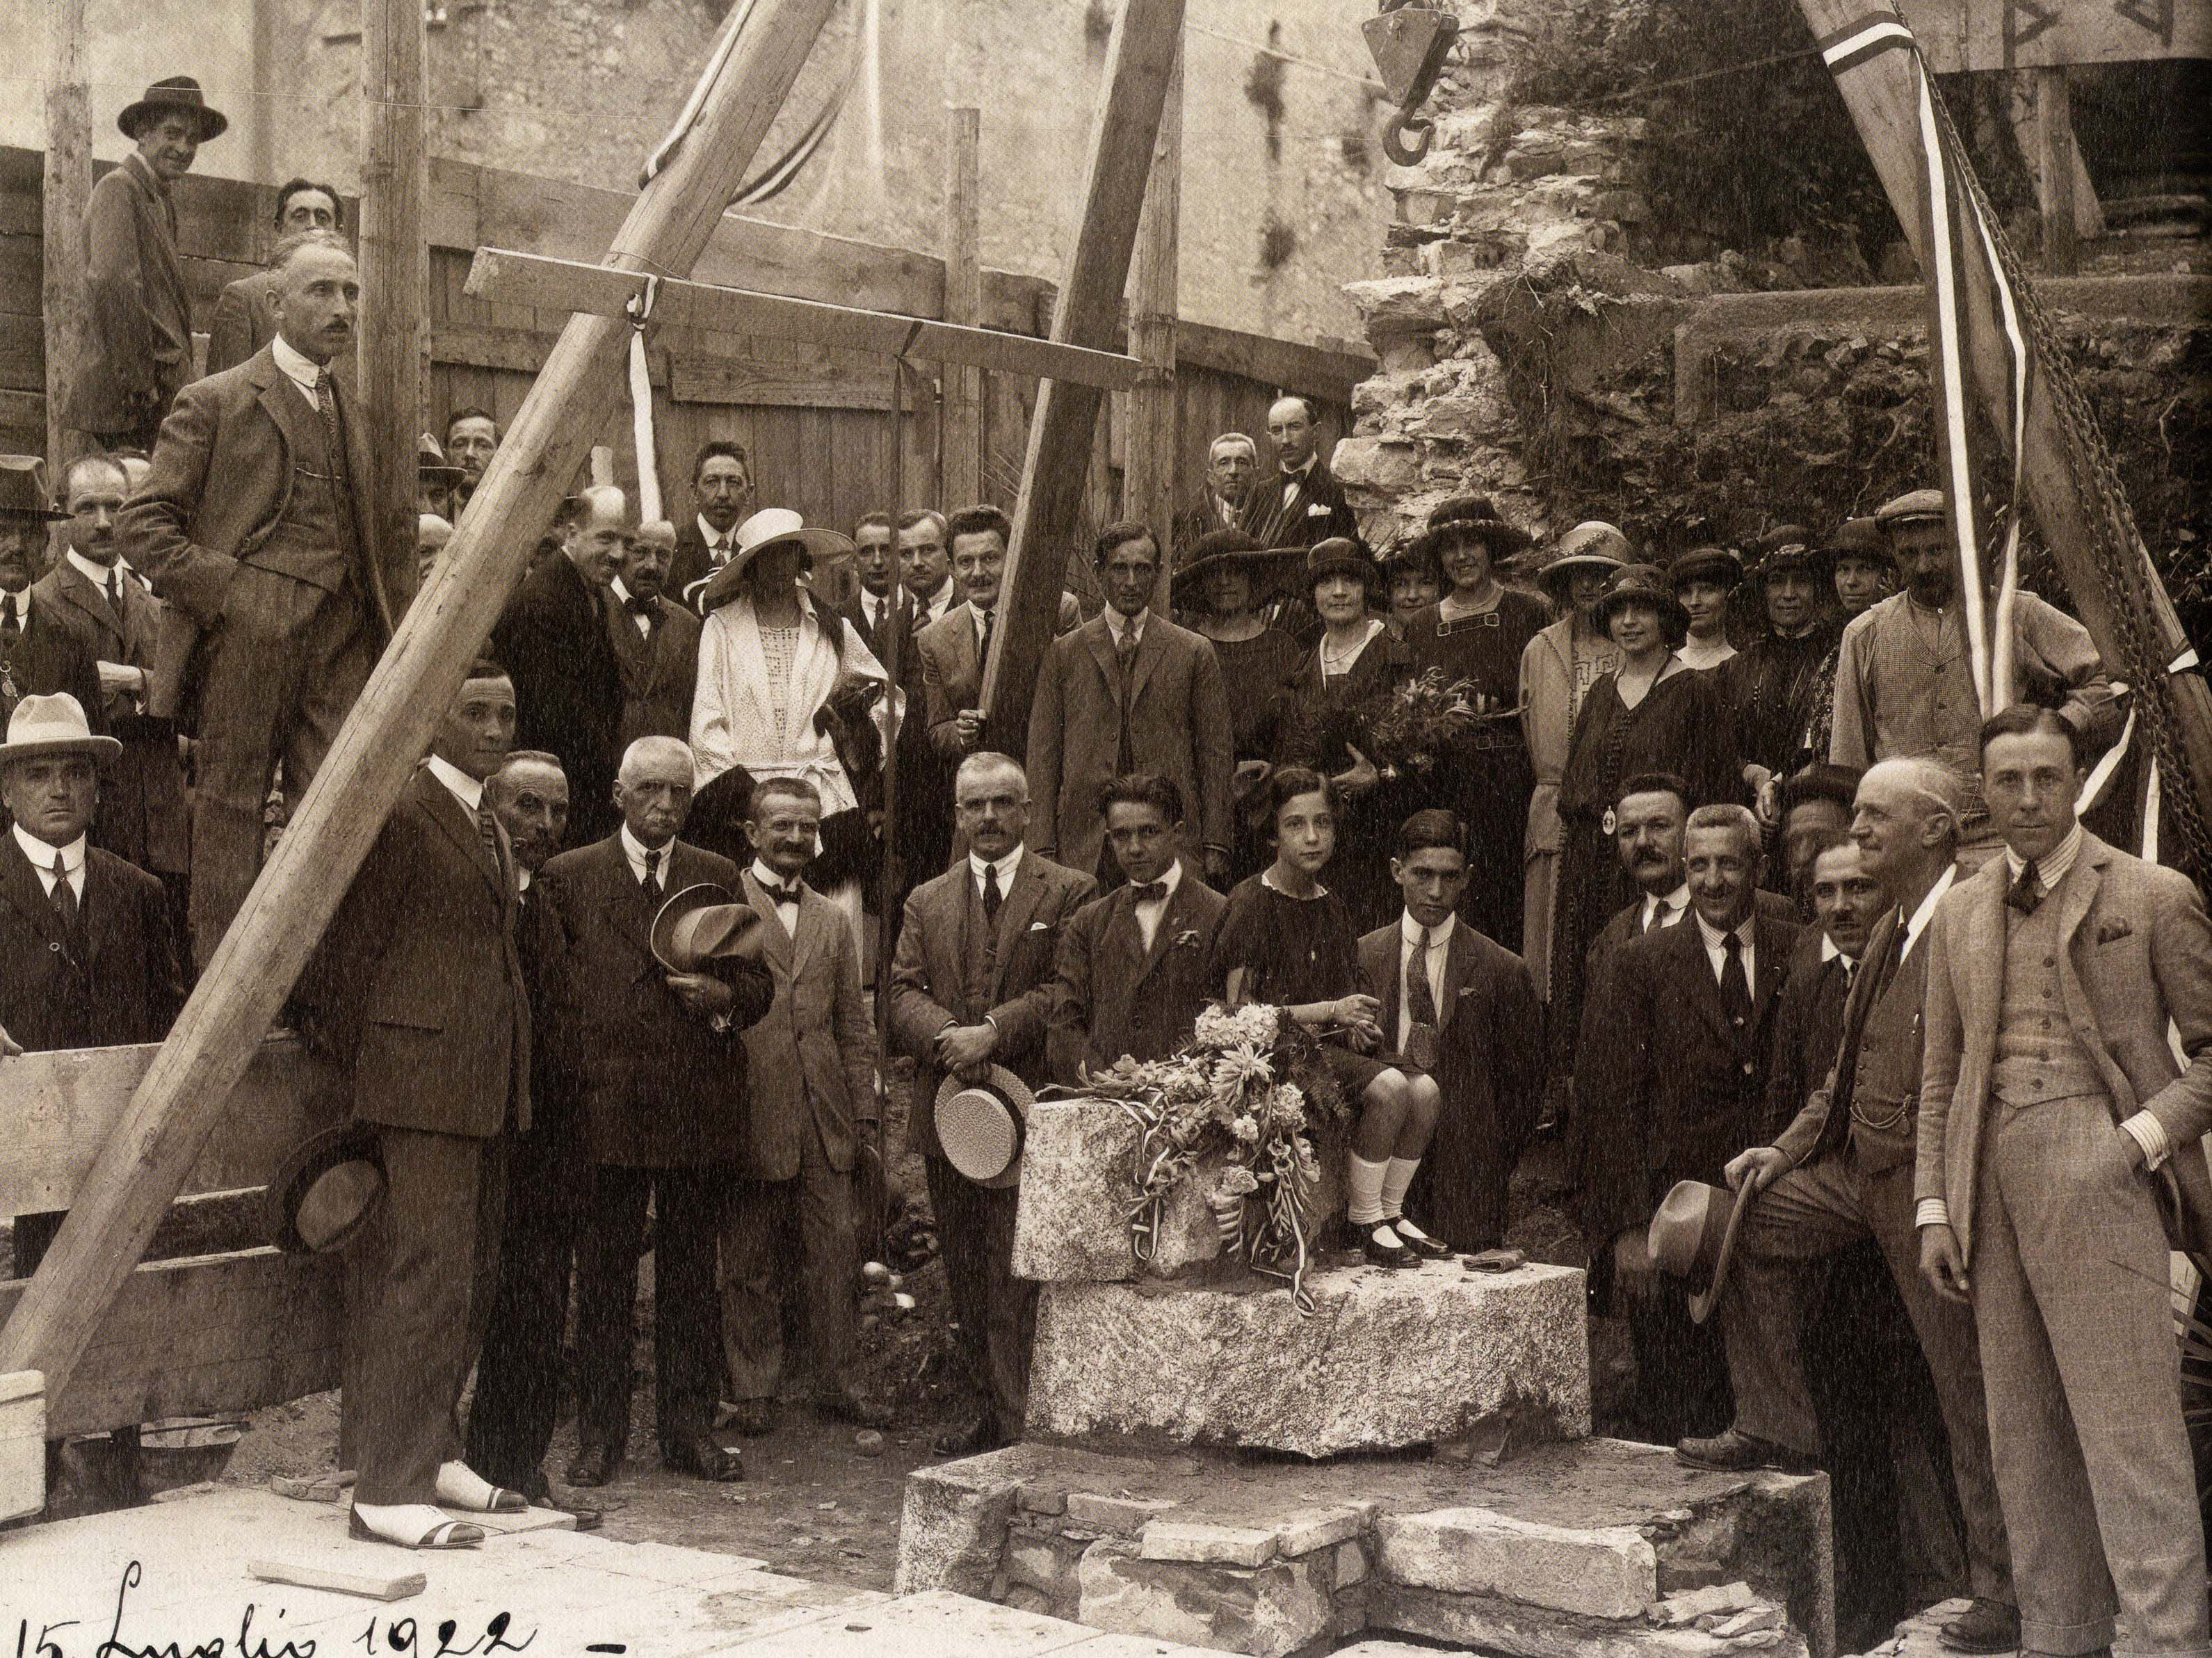 Como, 15/07/1922 - The laying of the foundation stone